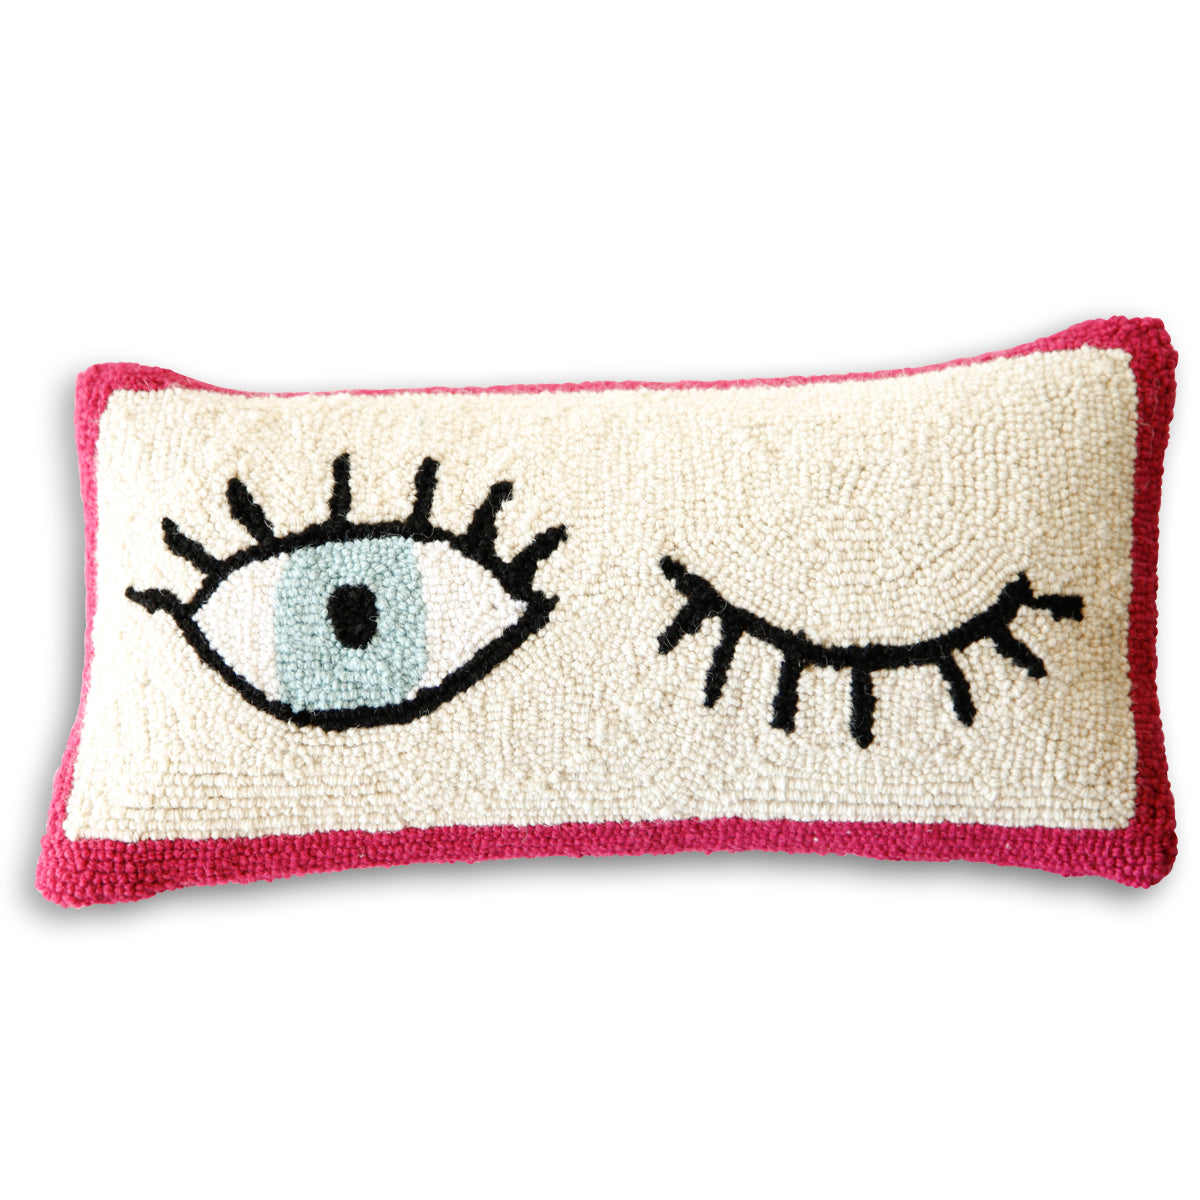 Wink Lumbar Pillow